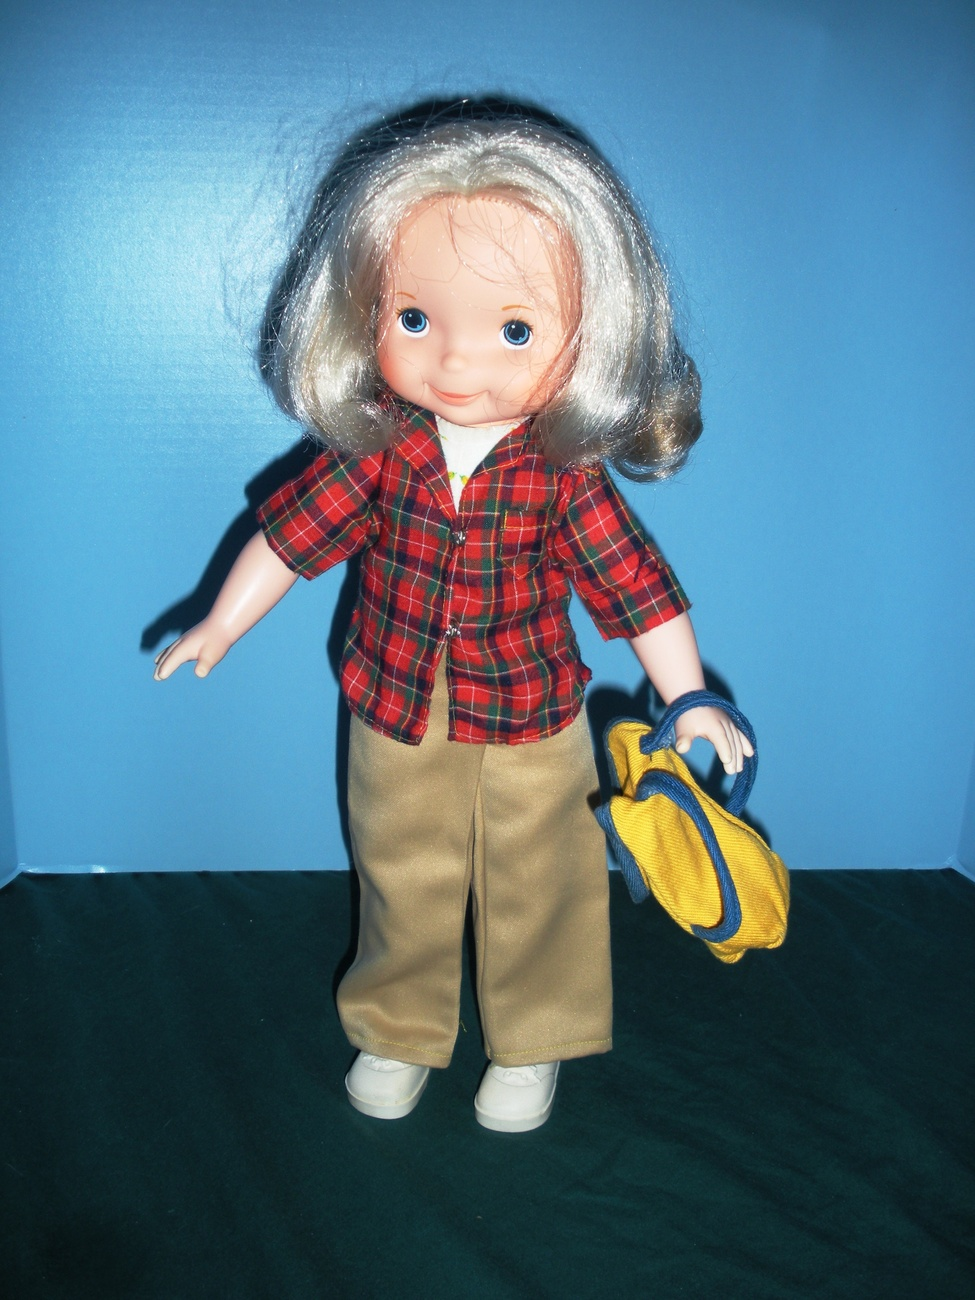 Vintage Fisher Price My Friend #222 Let's Go Camping Outfit COMP/NR MINT + SHOES